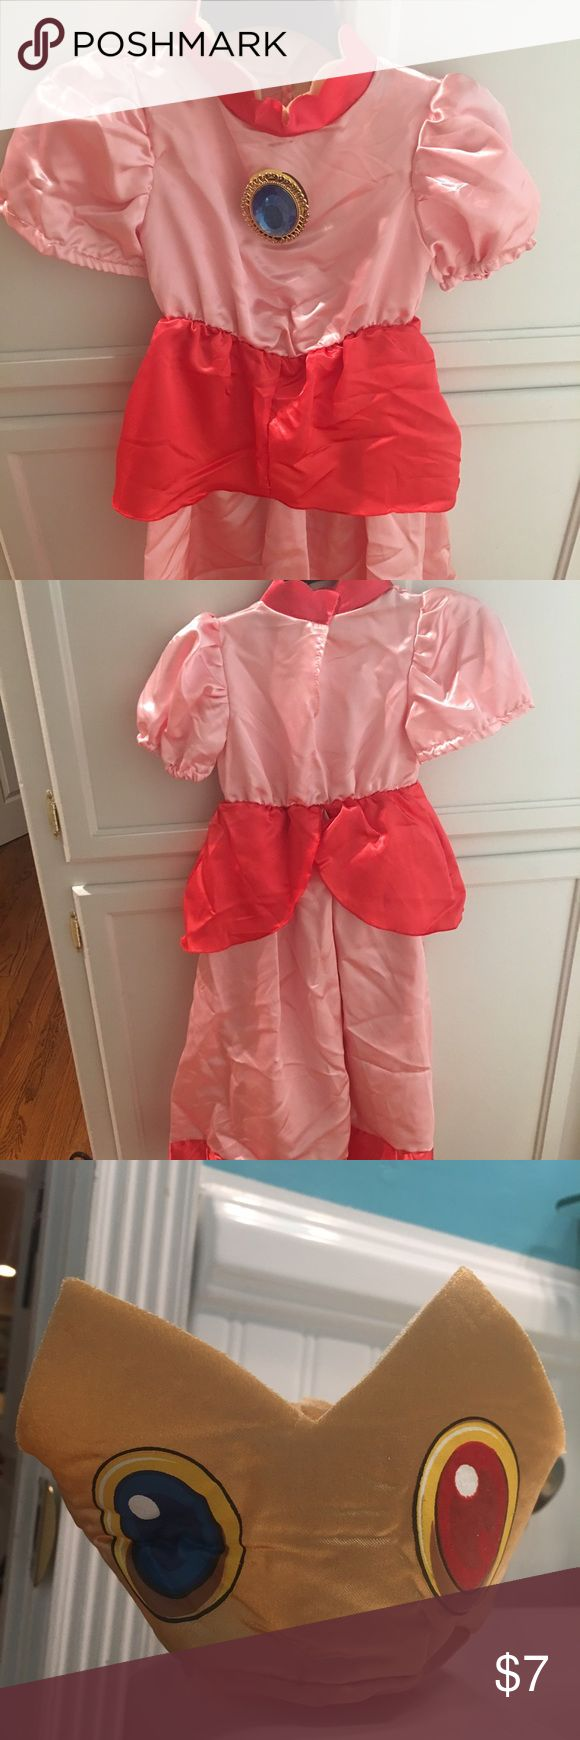 Mario - Princess Peach costume From Mario, Princess Peach costume size Small (4-6).  Comes with dress and head piece. Costumes Halloween